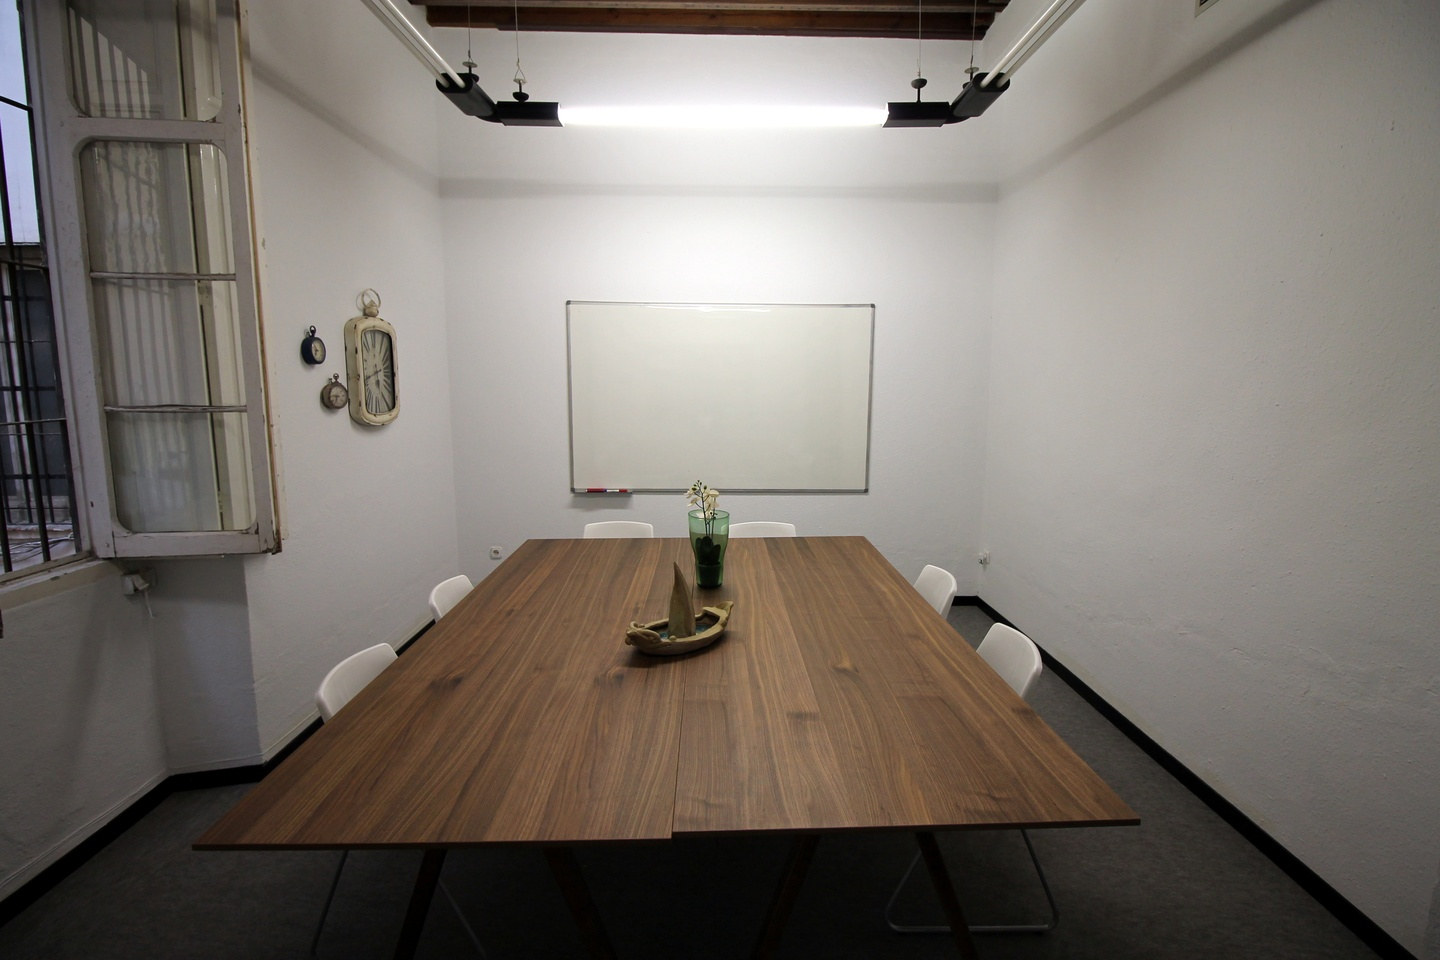 Malaga Train station meeting rooms Meeting room The Translation Factory - Meeting Room image 2